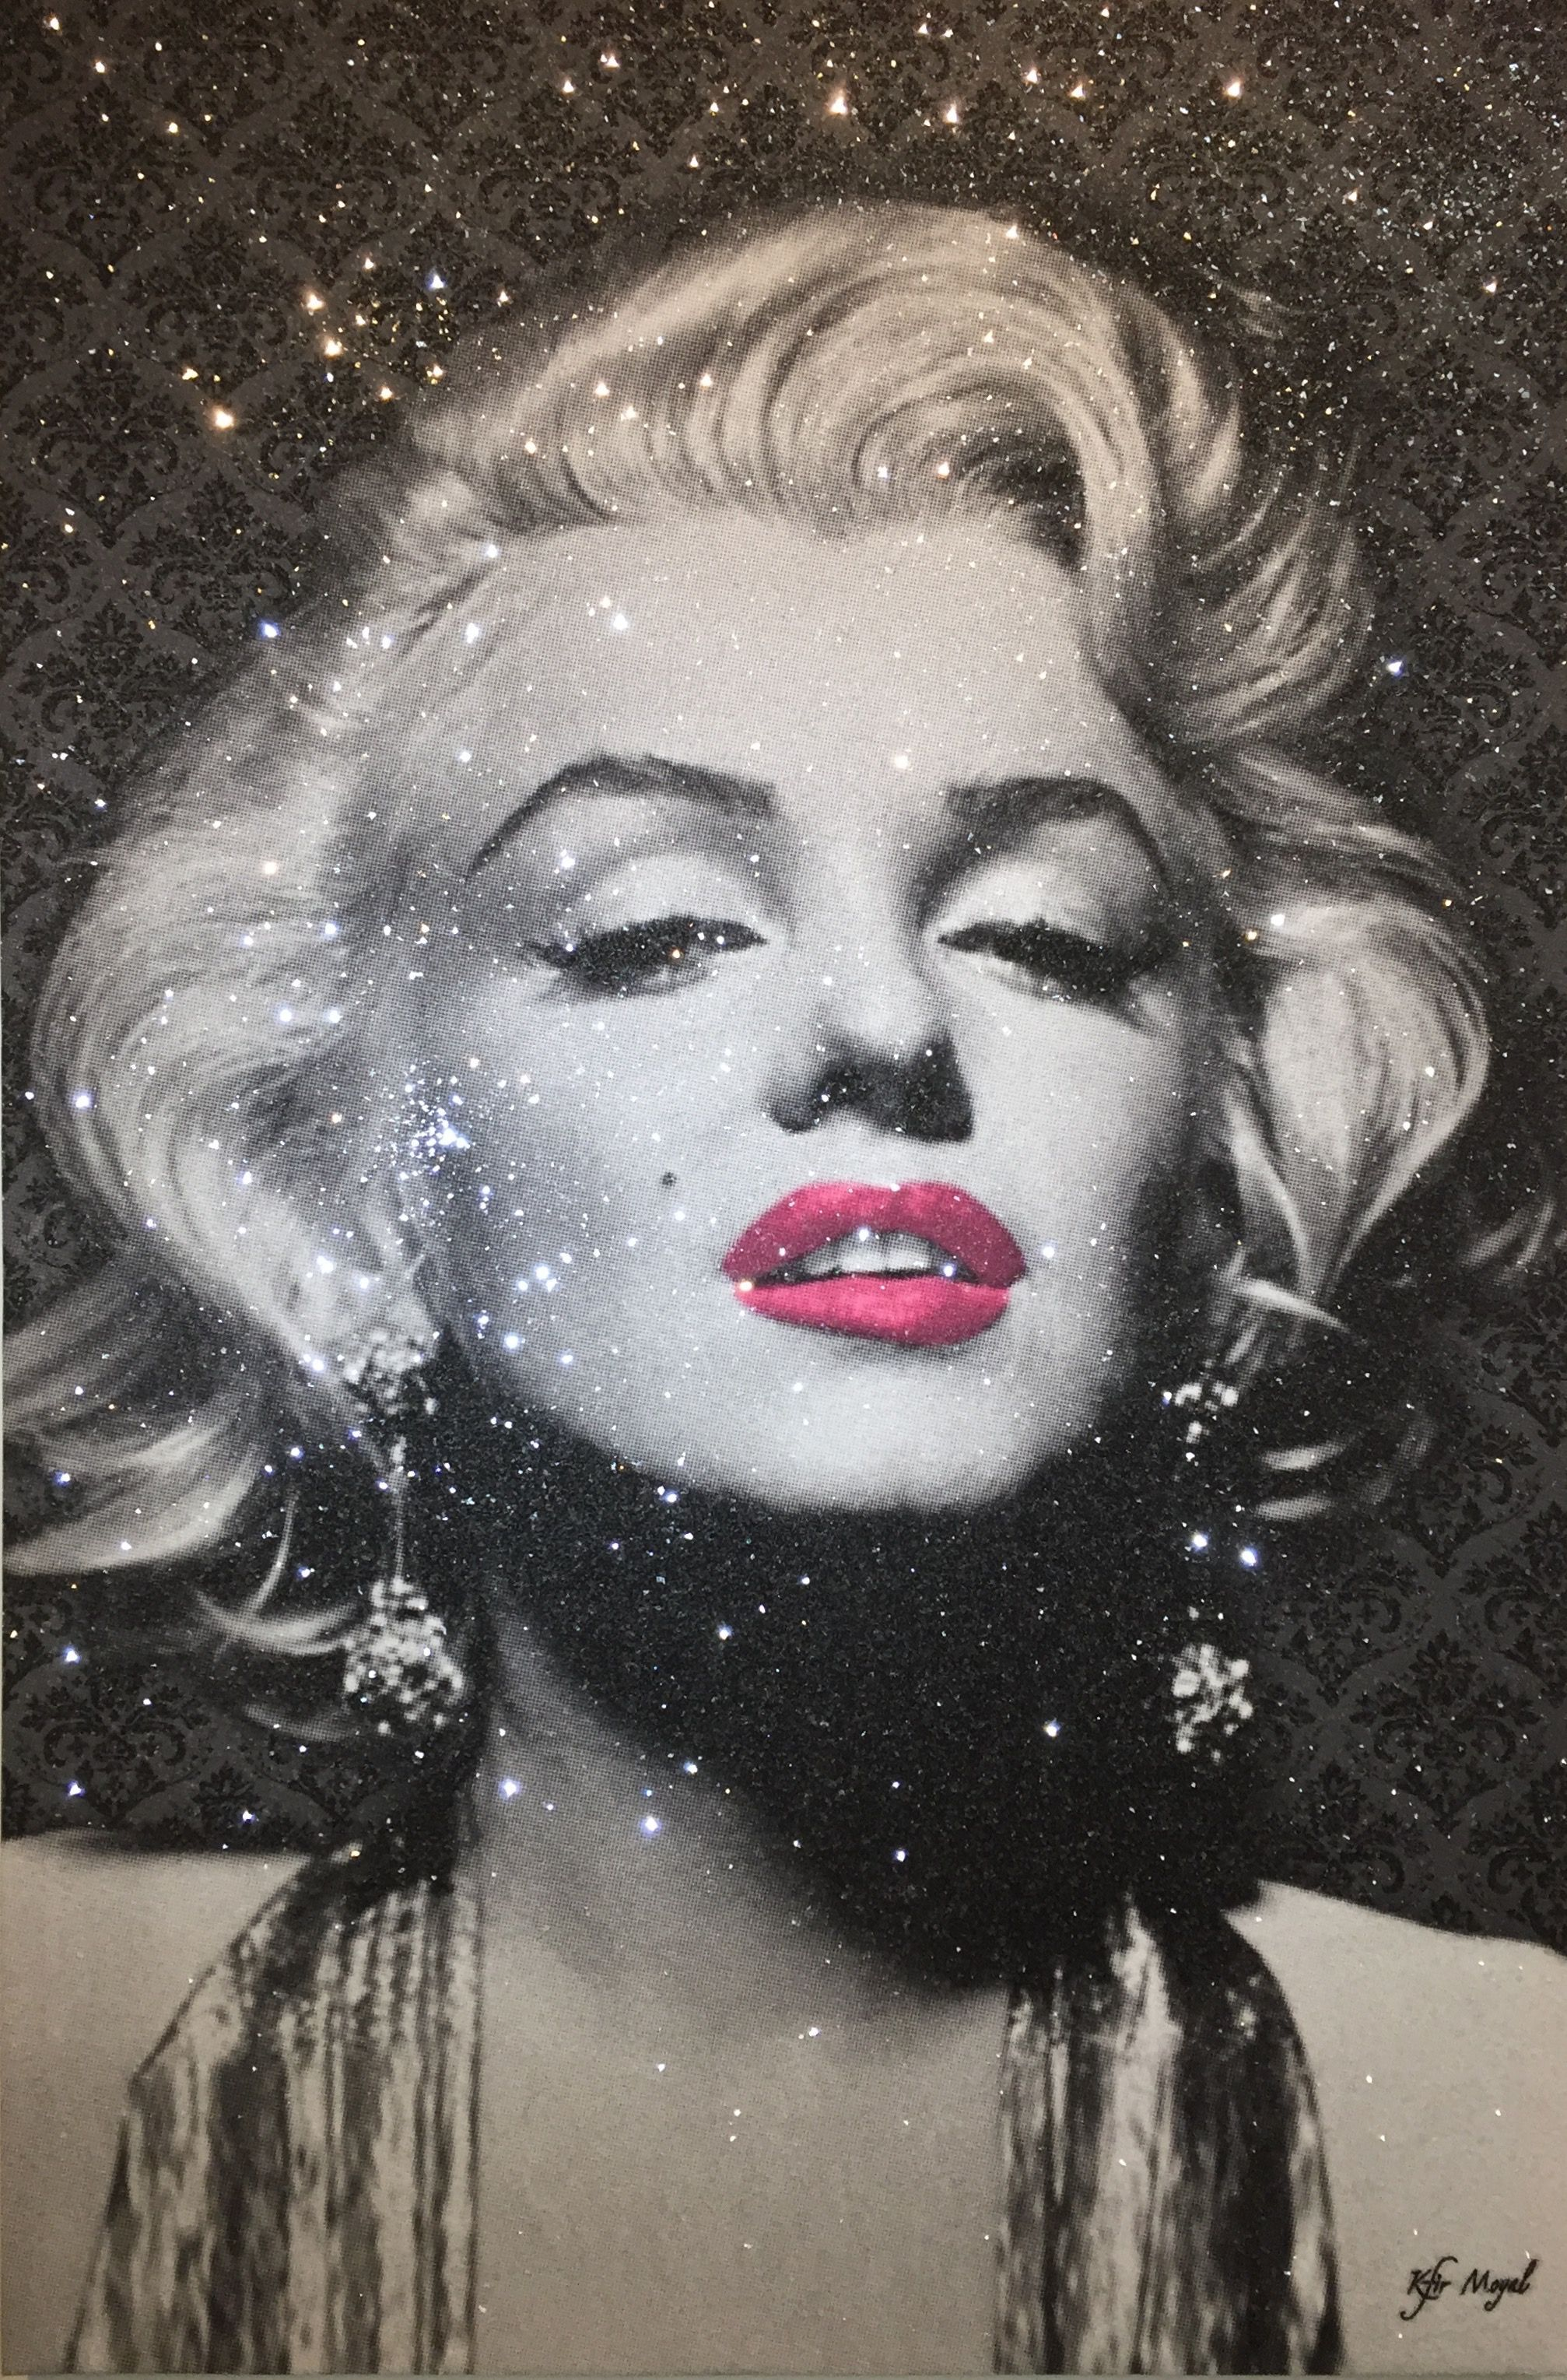 Kfir Moyal - Marilyn Birthday Hot Pink Lips, 2017; Limited edition mixed media silkscreen on canvas, diamond dust, and hand-embellished Swarovski crystals; Off The Wall Gallery Houston.